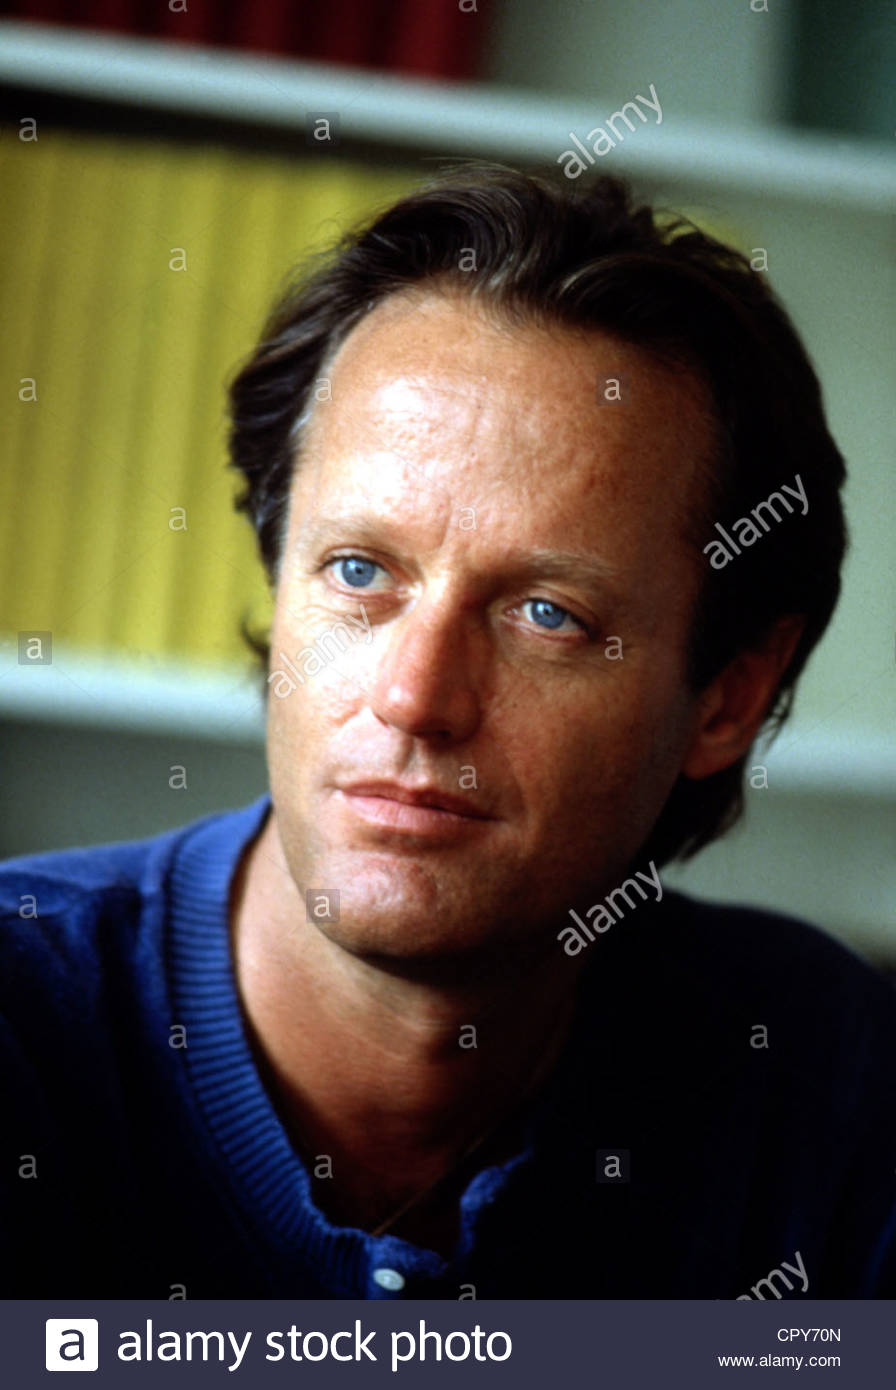 Fonda, Peter, * 23.2.1940, US actor, director, portrait, 1980s, blue eyes, - Stock Image